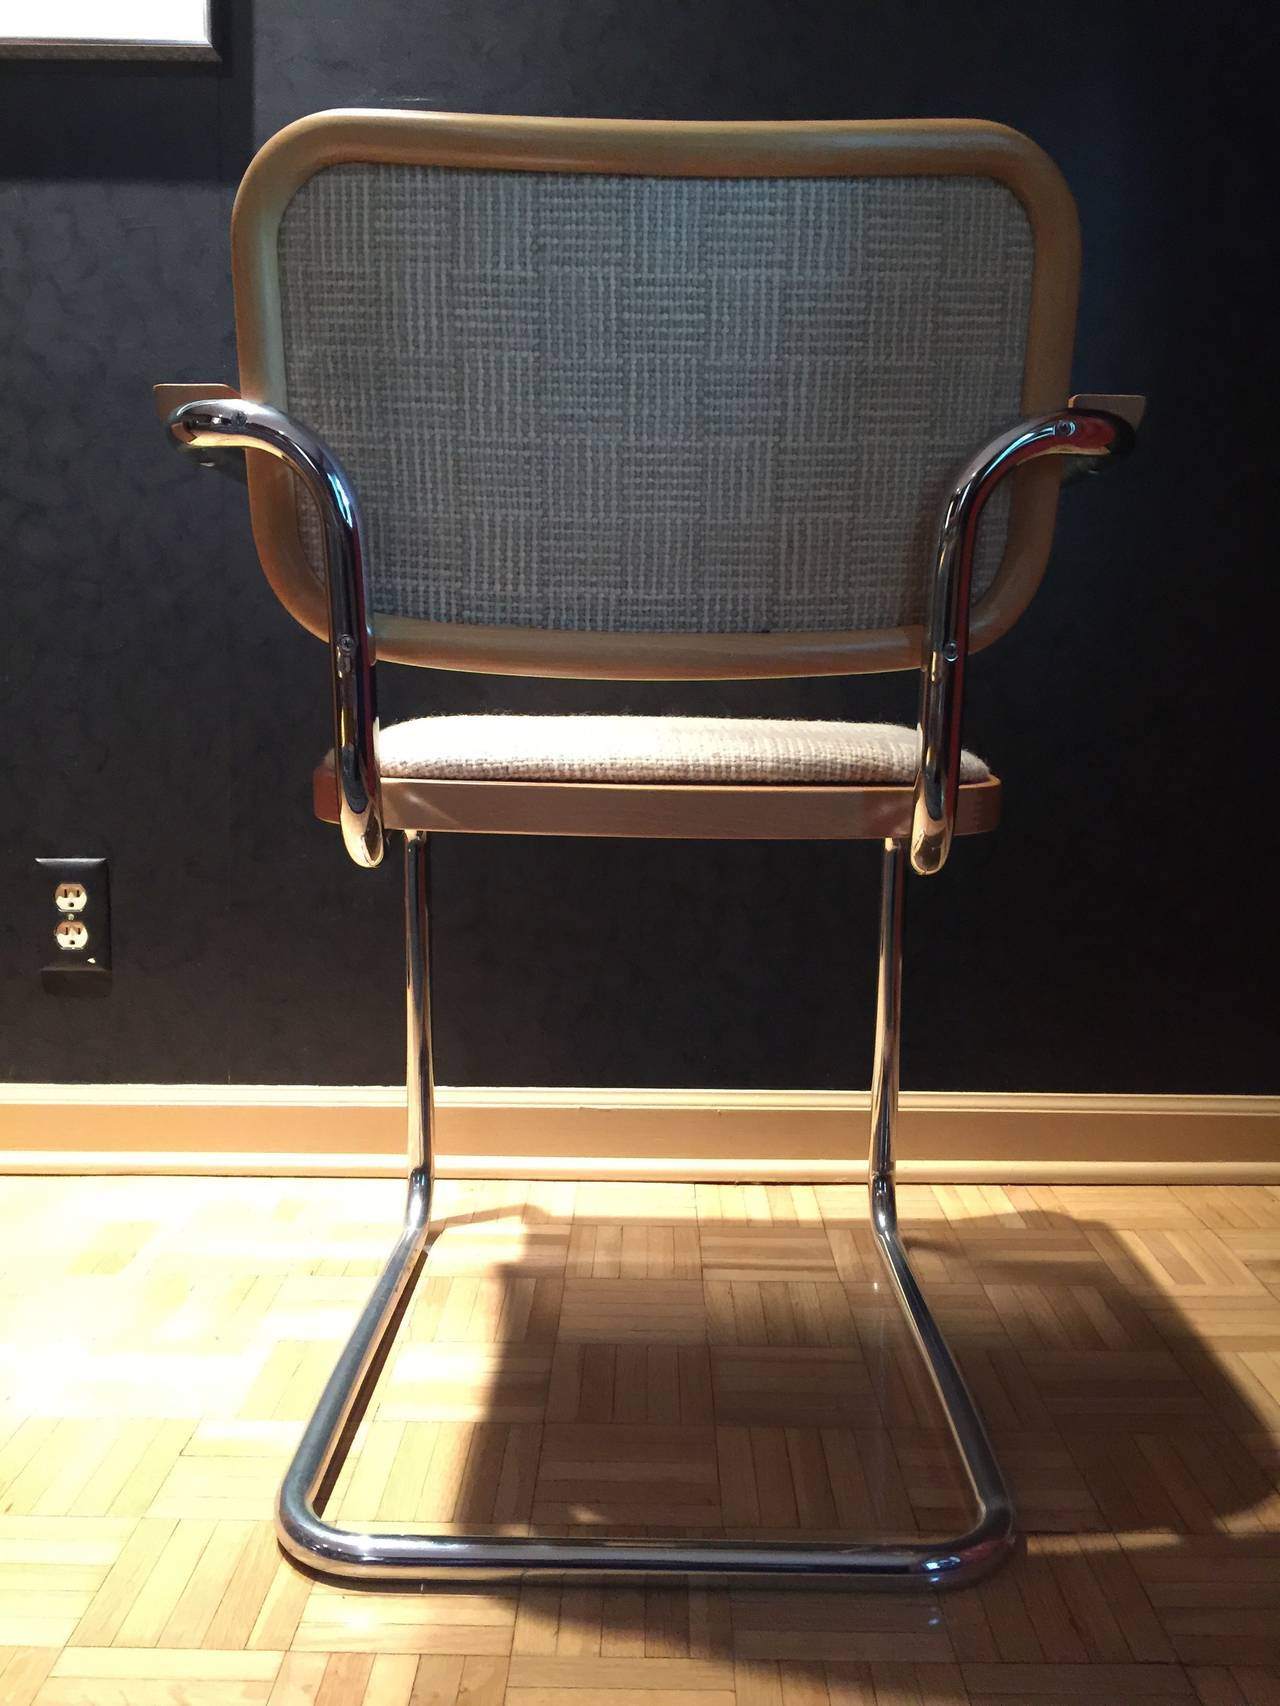 cesca chair replacement seats uk lifts for stairs with landings incredible set of ten chairs by marcel breuer